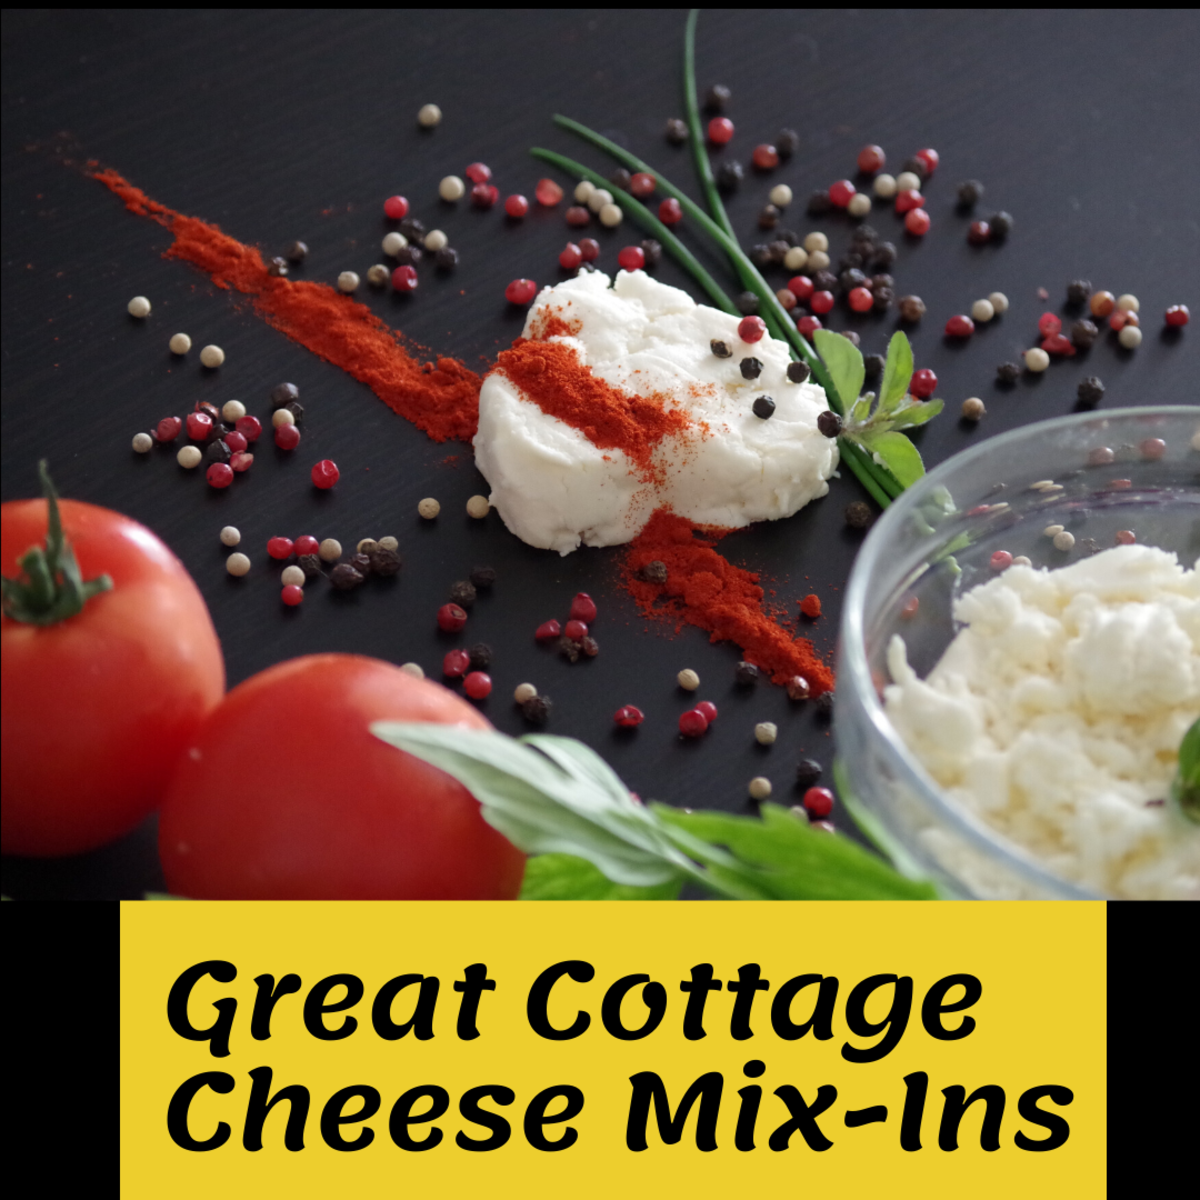 Unexpected Cottage Cheese Mix-Ins